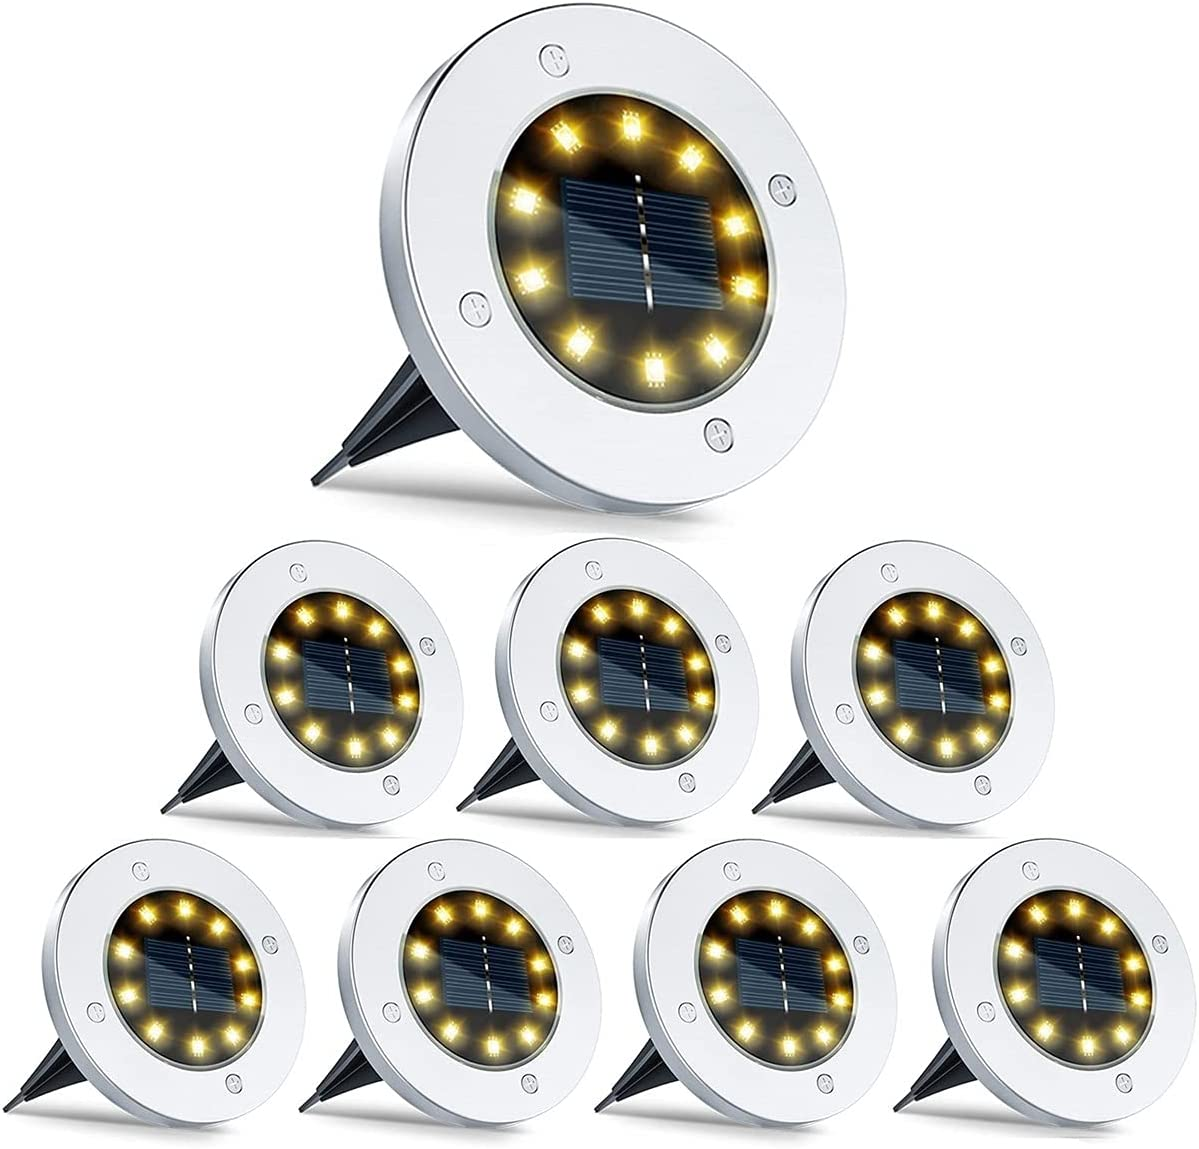 Max 56% OFF ZHM Solar Ground Lights Outdoor Waterproof 8 LED 2021 new 16 Pathway Lig